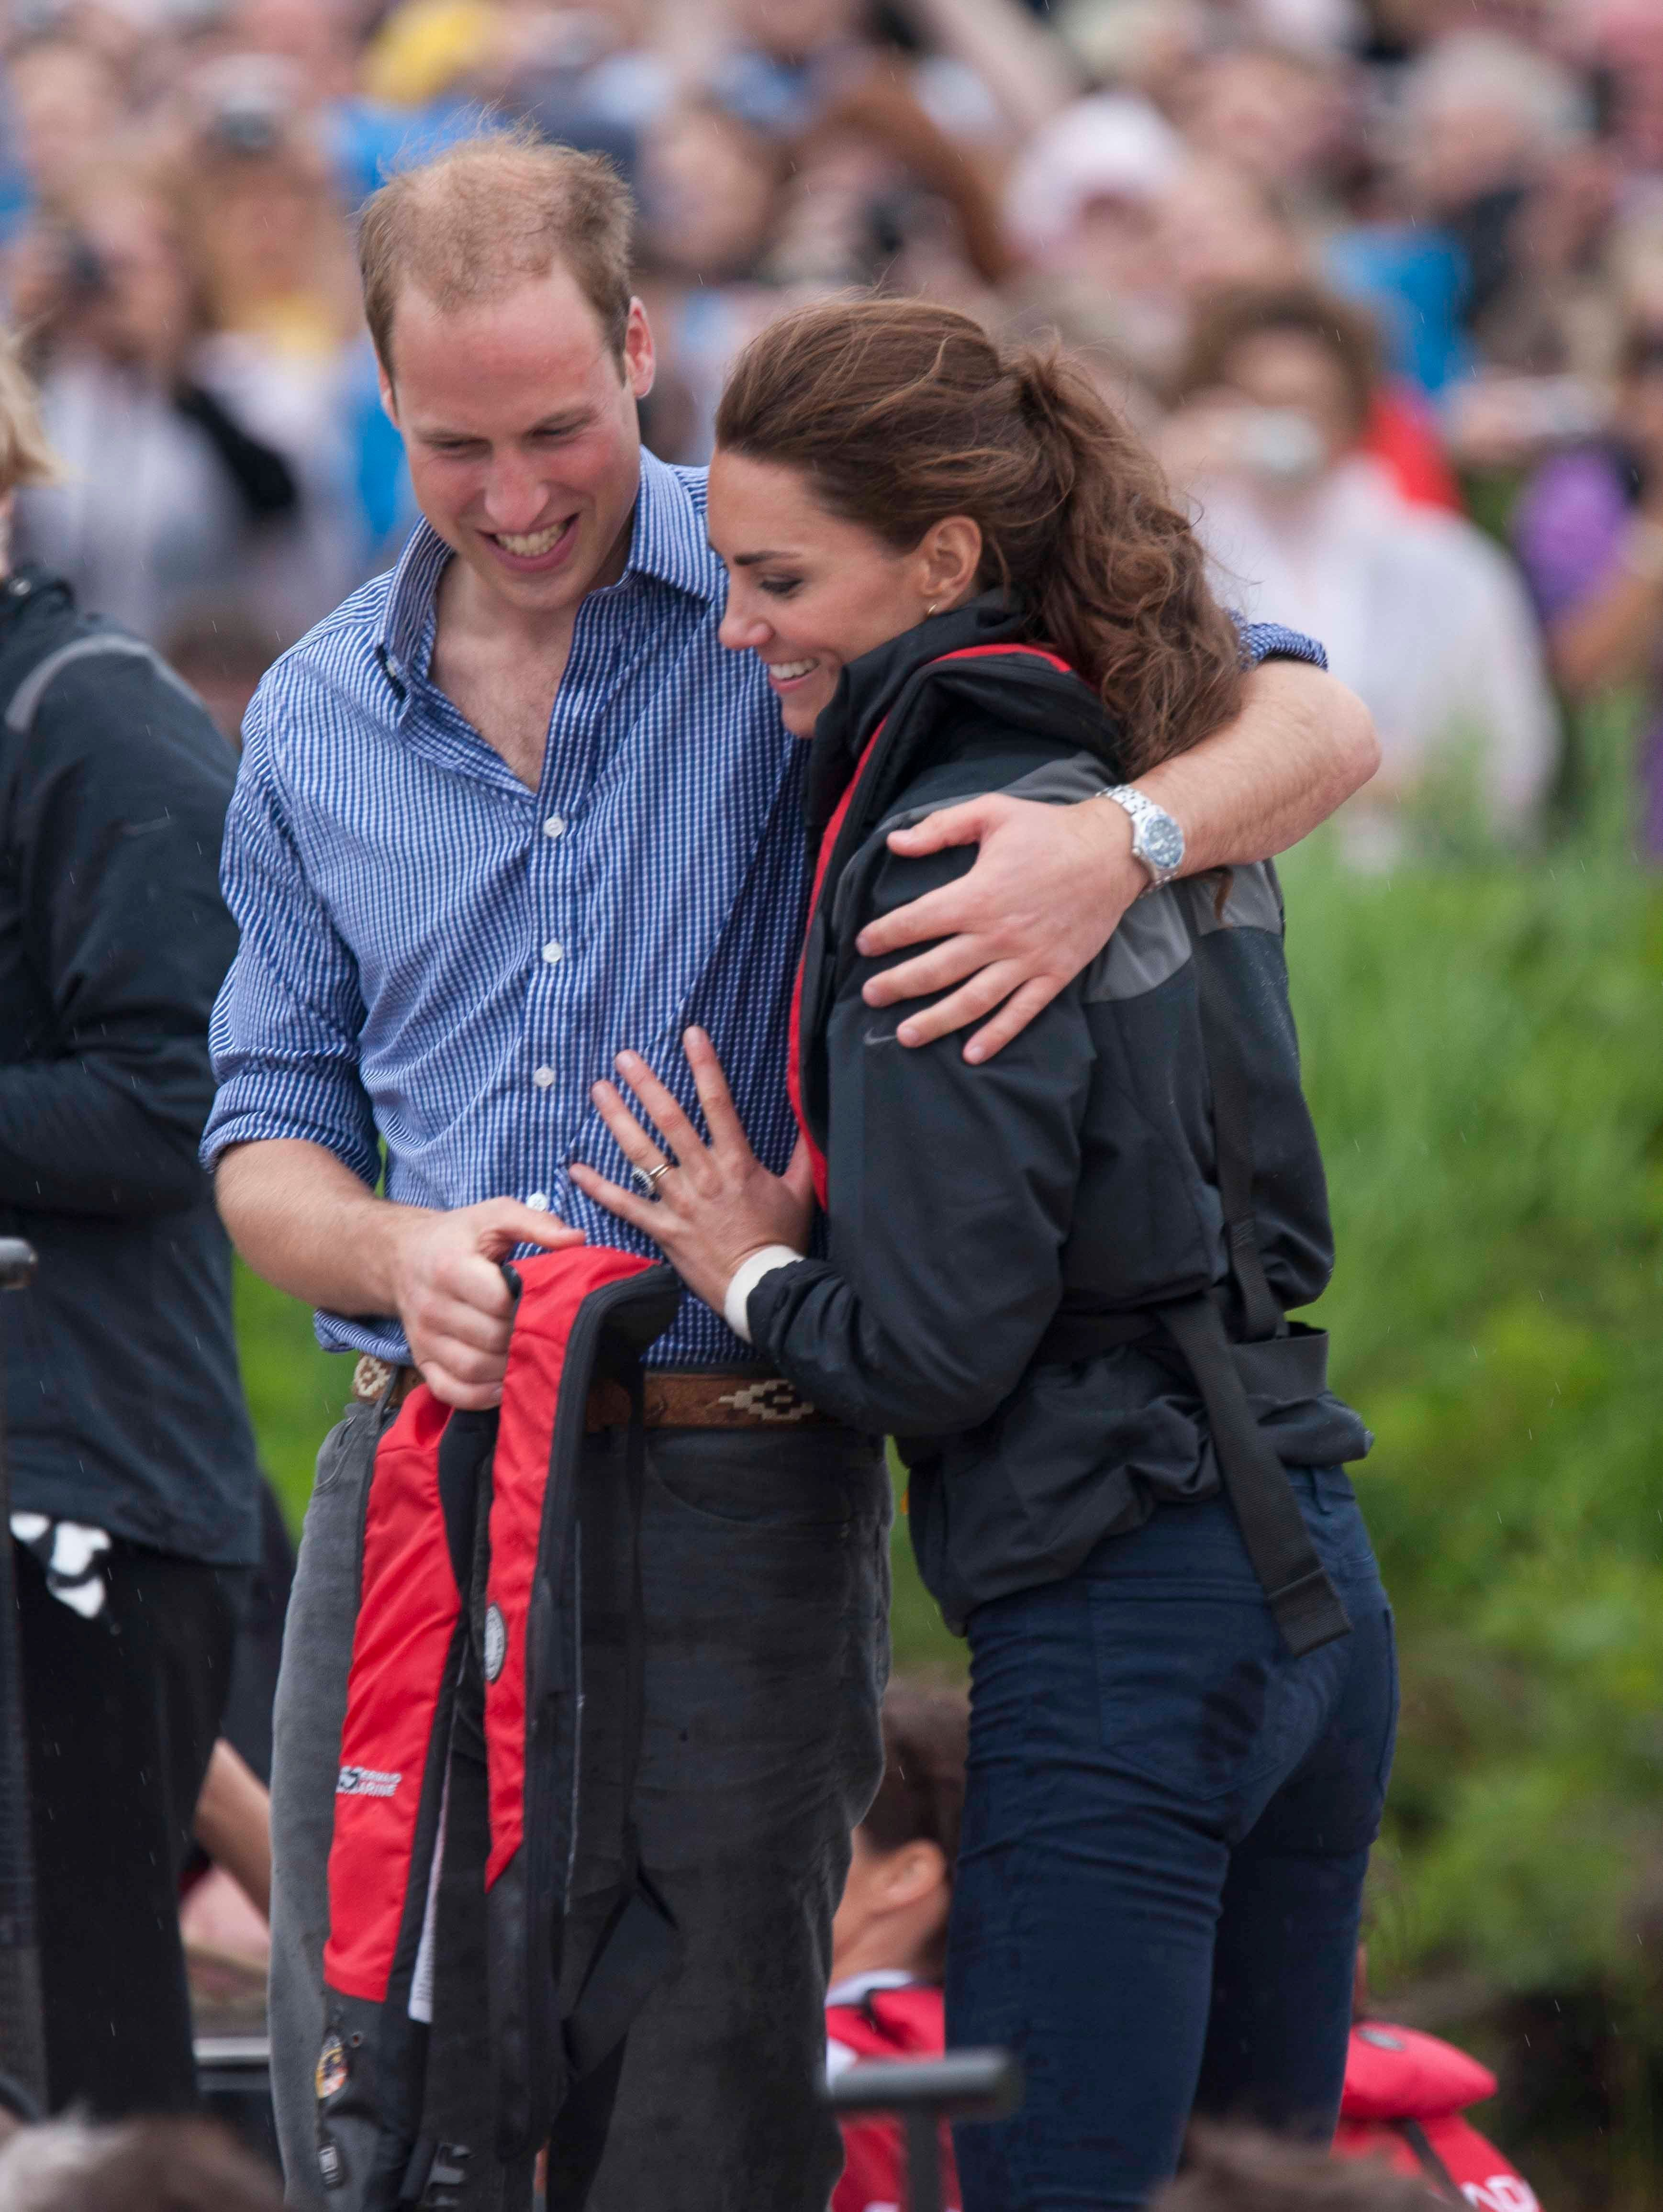 Prince William and Kate Middleton sharing a warm embrace | Photo: Getty Images